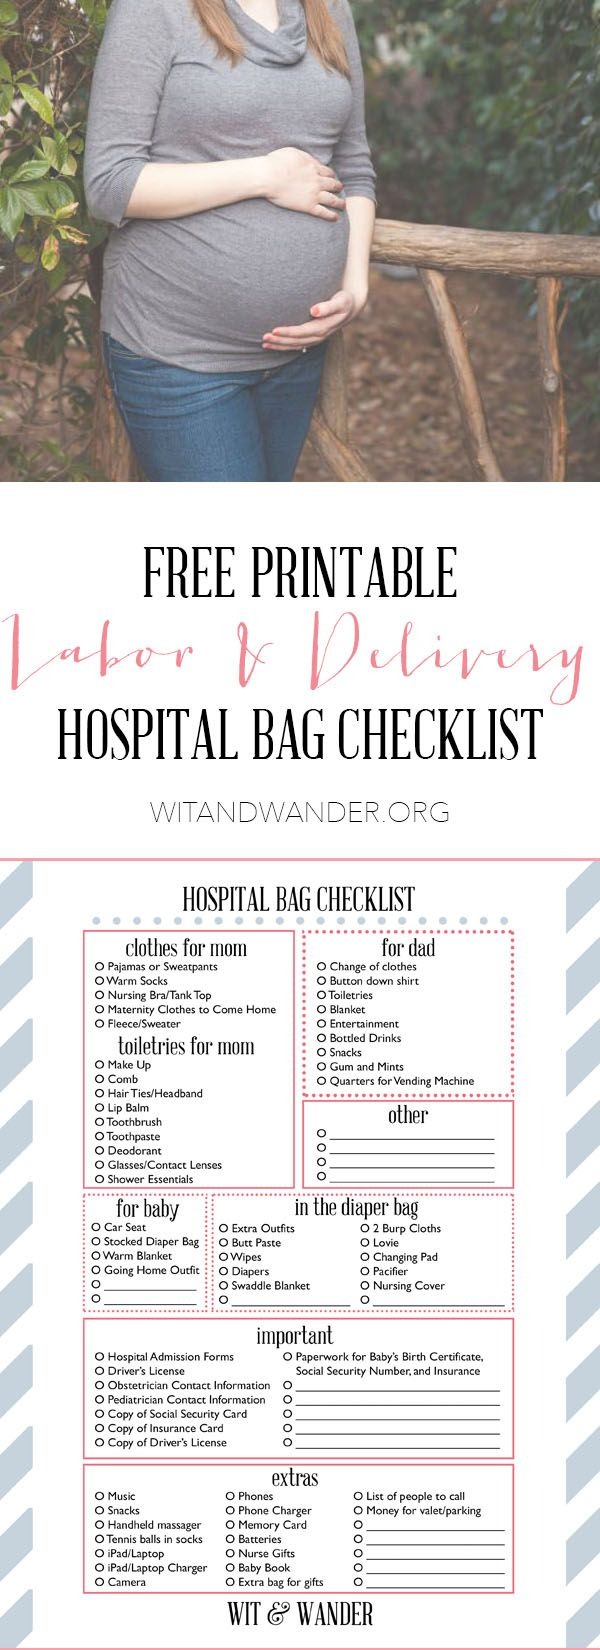 If you're expecting and are still not sure of what to take in your hospital bag, make sure you don't forget anything with this printable checklist!